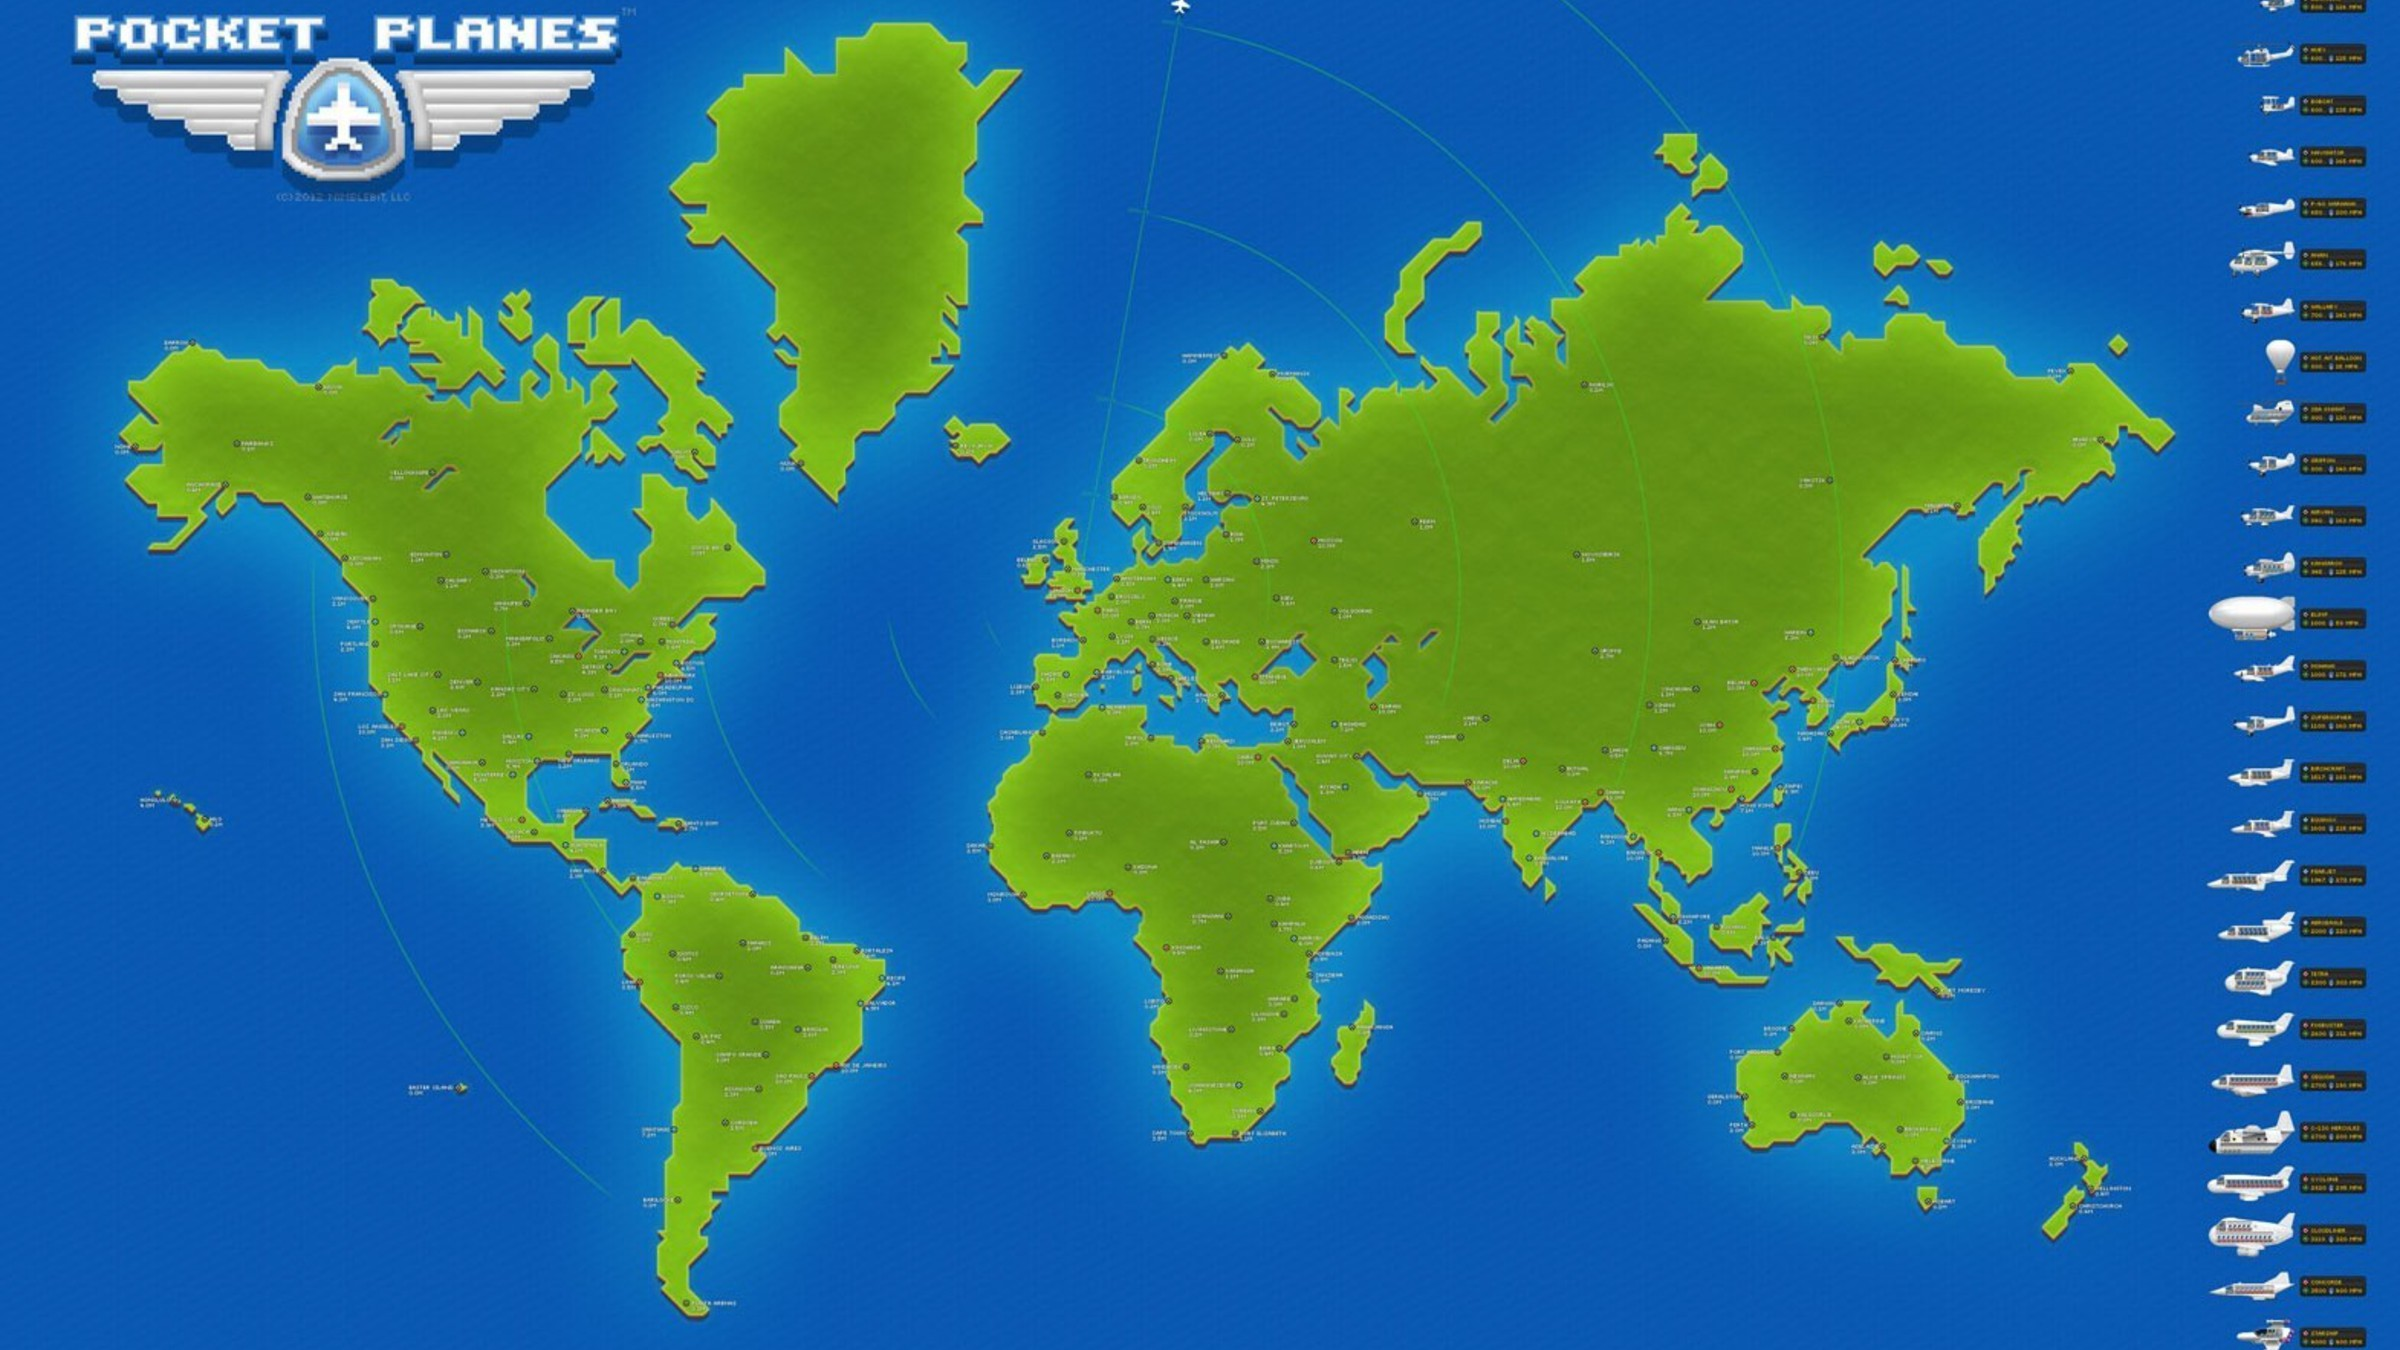 Video games maps iphone world map pocket planes wallpaper wallpaper resolutions gumiabroncs Image collections